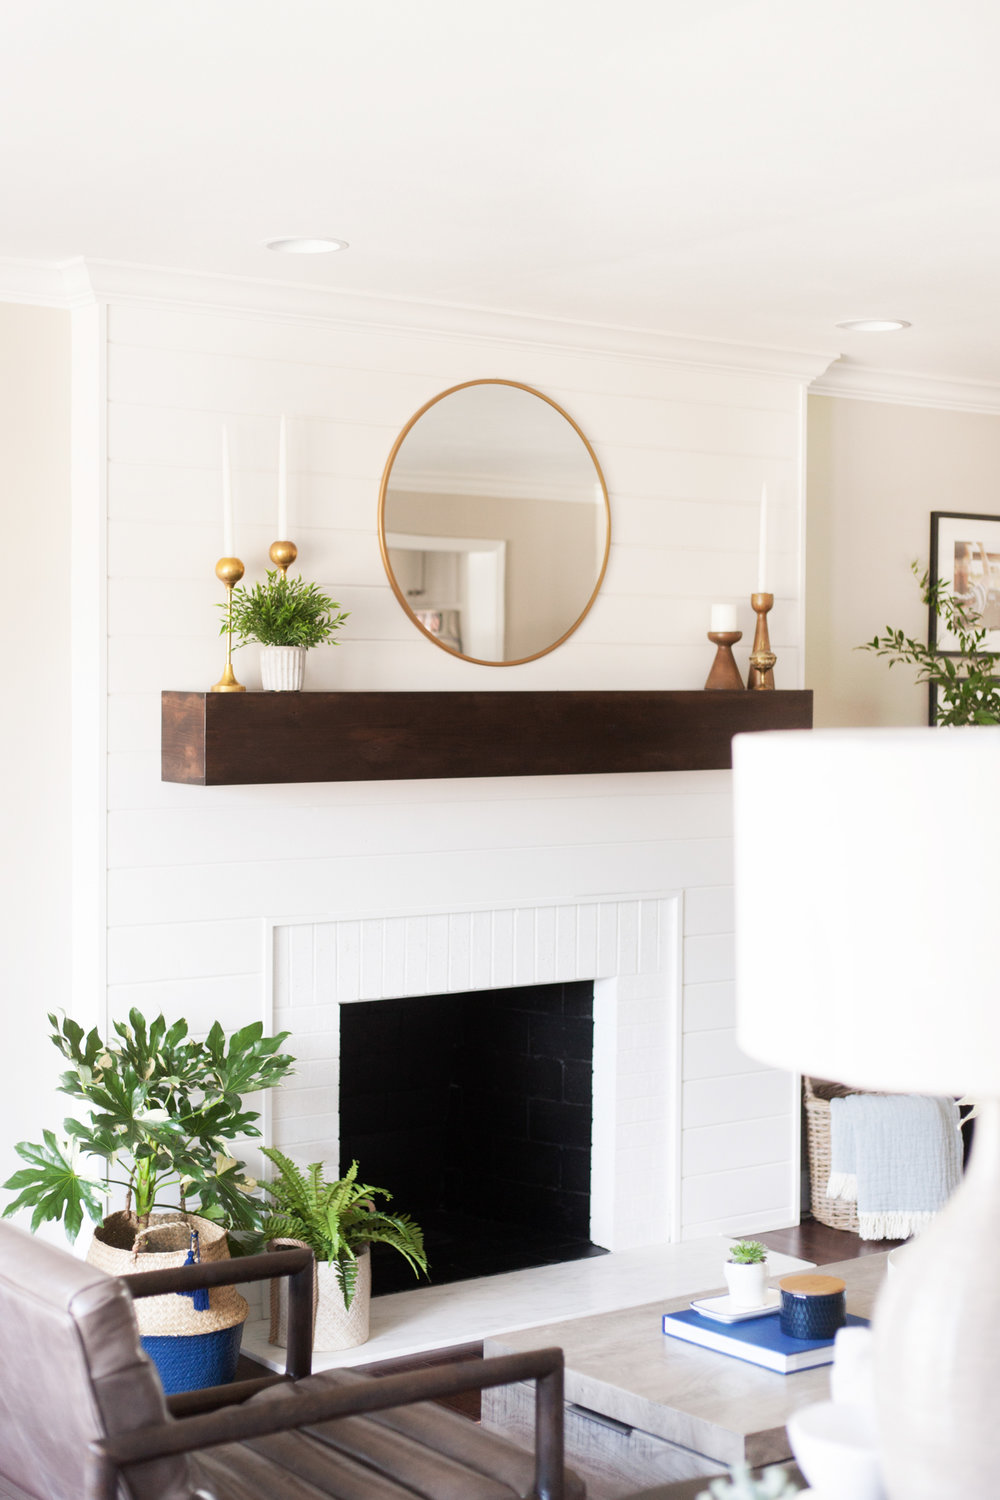 Flatbranch Home Reveal | Scout & Nimble